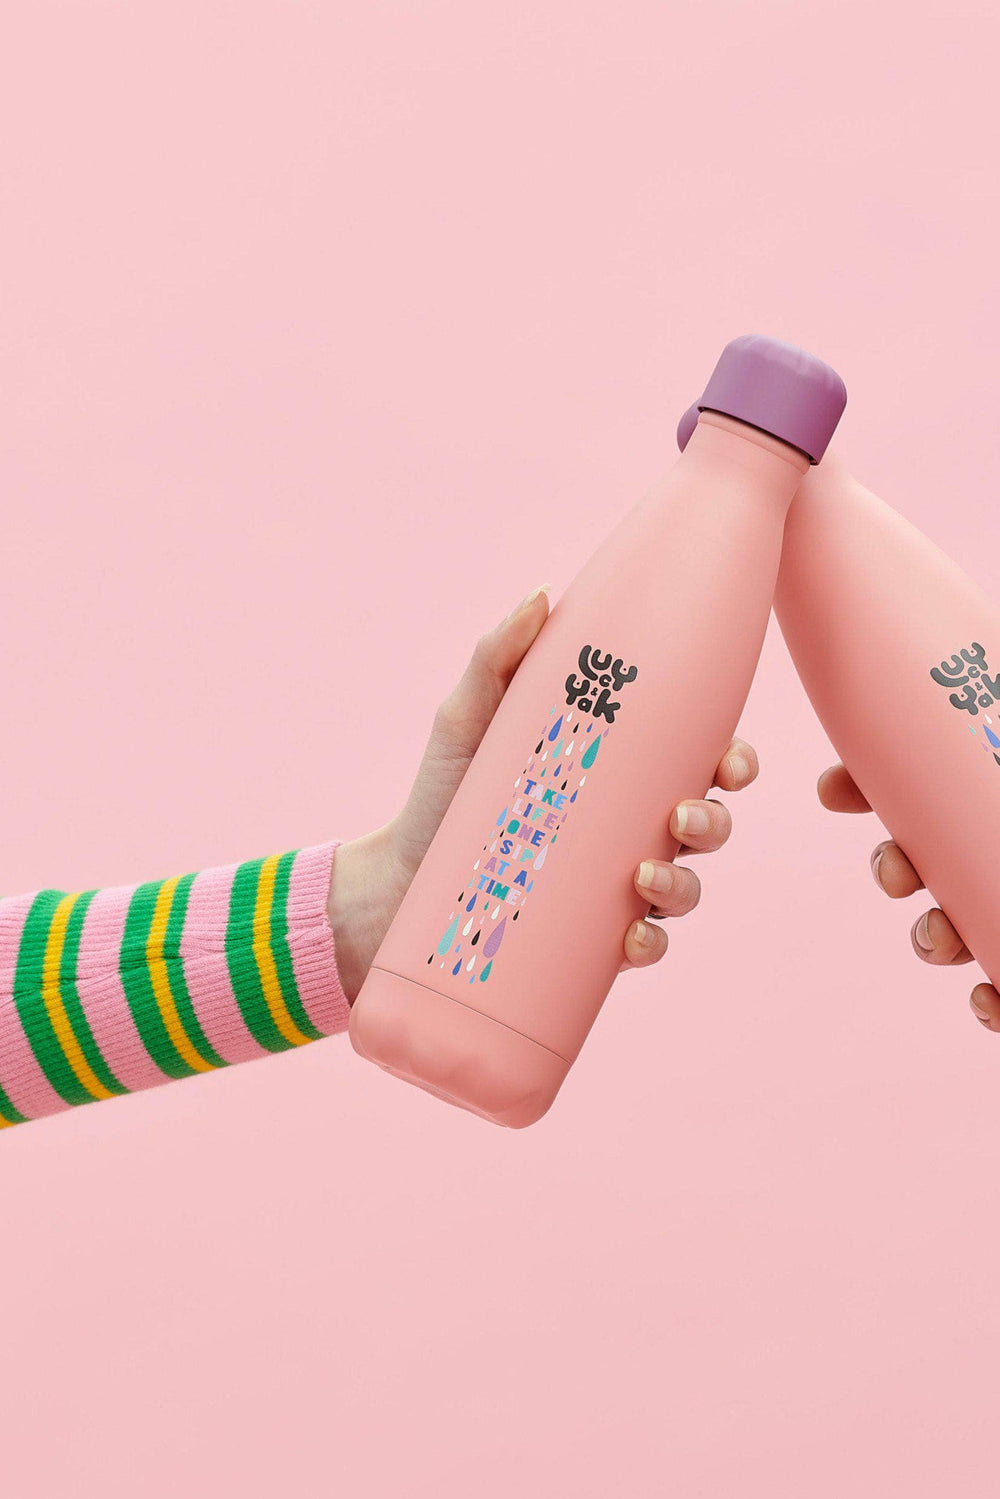 Lucy & Yak accessories S'well x Lucy & Yak 500ml Water Bottle - Take Life One Sip at a Time